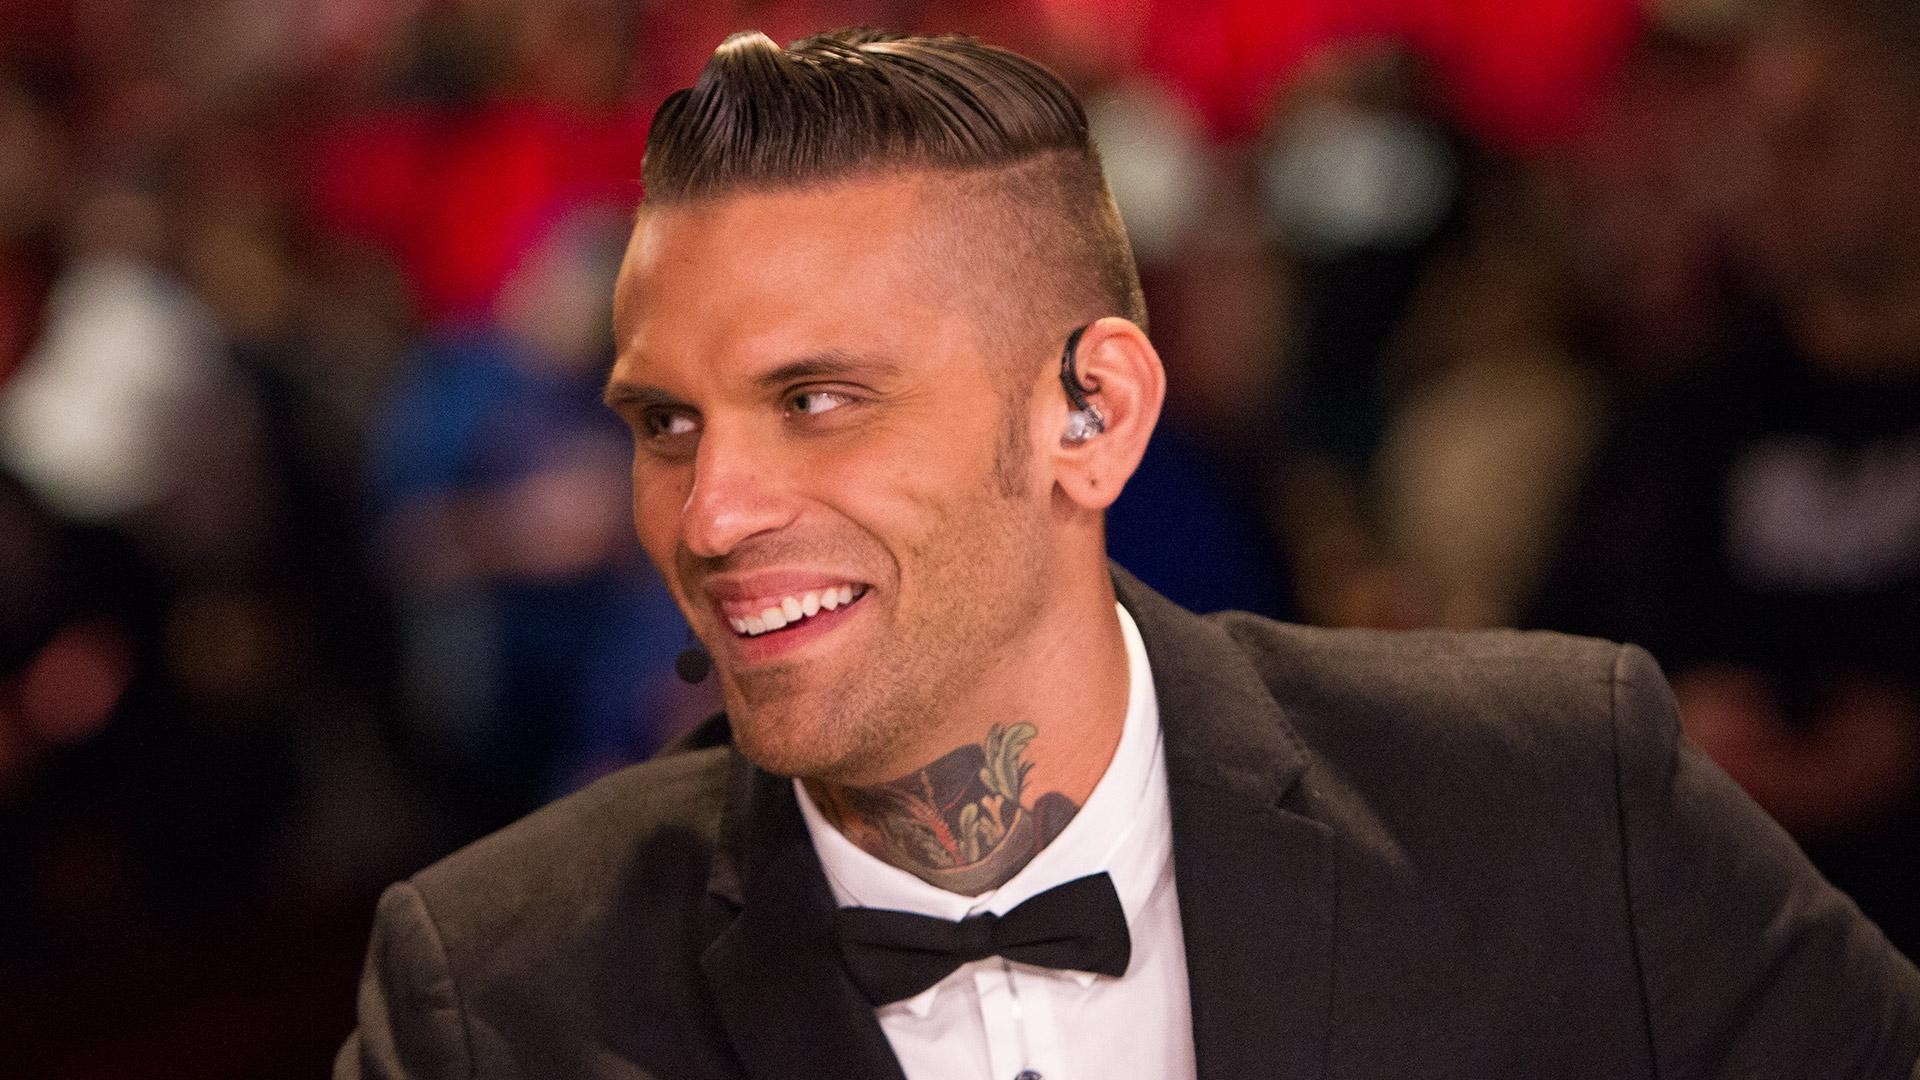 WWE: Corey Graves reveals if he's a heel commentator - Corey Graves